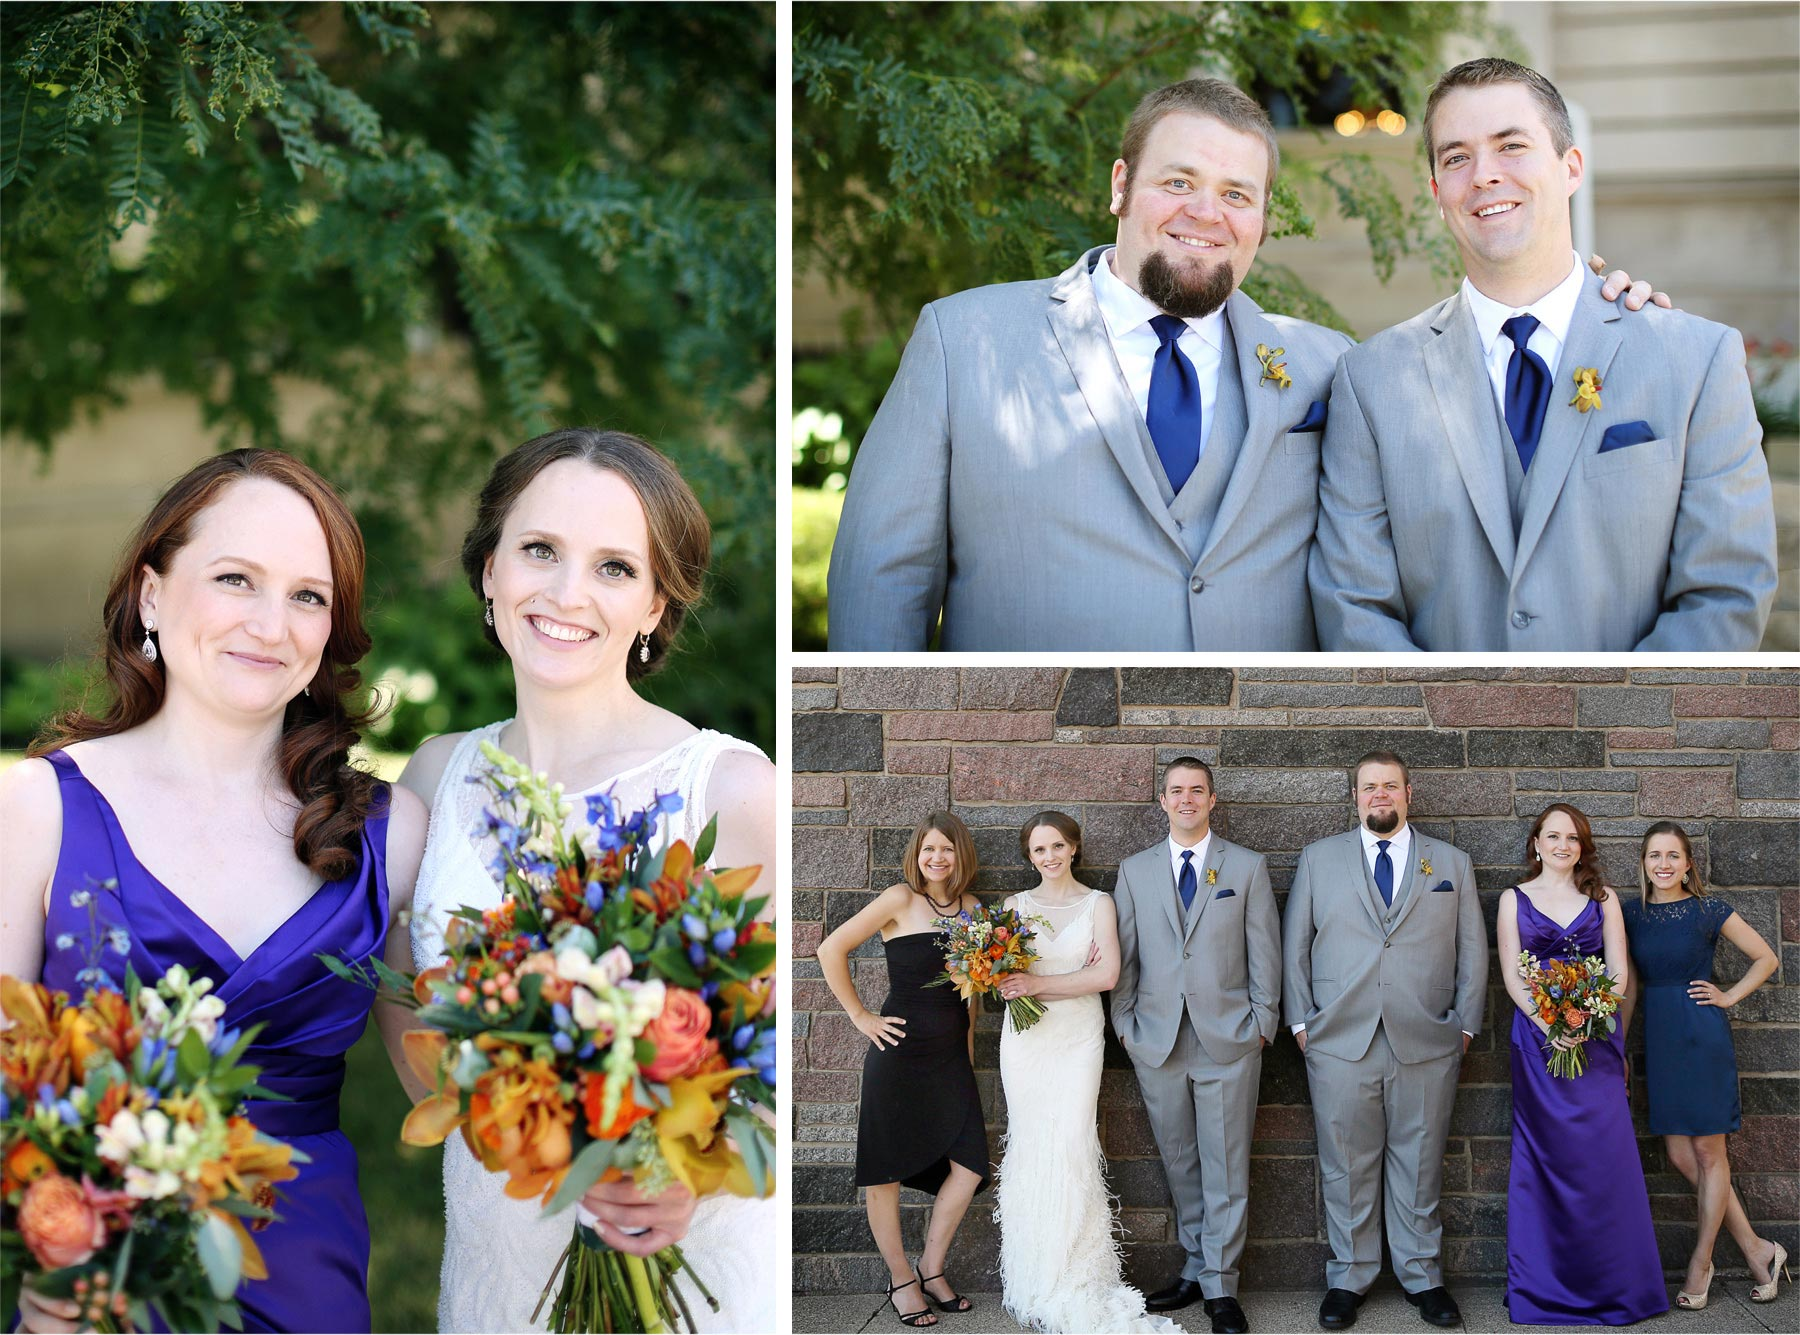 12-Minneapolis-Minnesota-Wedding-Photographer-by-Andrew-Vick-Photography-Summer-Semple-Mansion-Bride-Groom-Bridesmaid-Groomsmen-Bridal-Party-Flowers-Stephanie-and-Robert.jpg